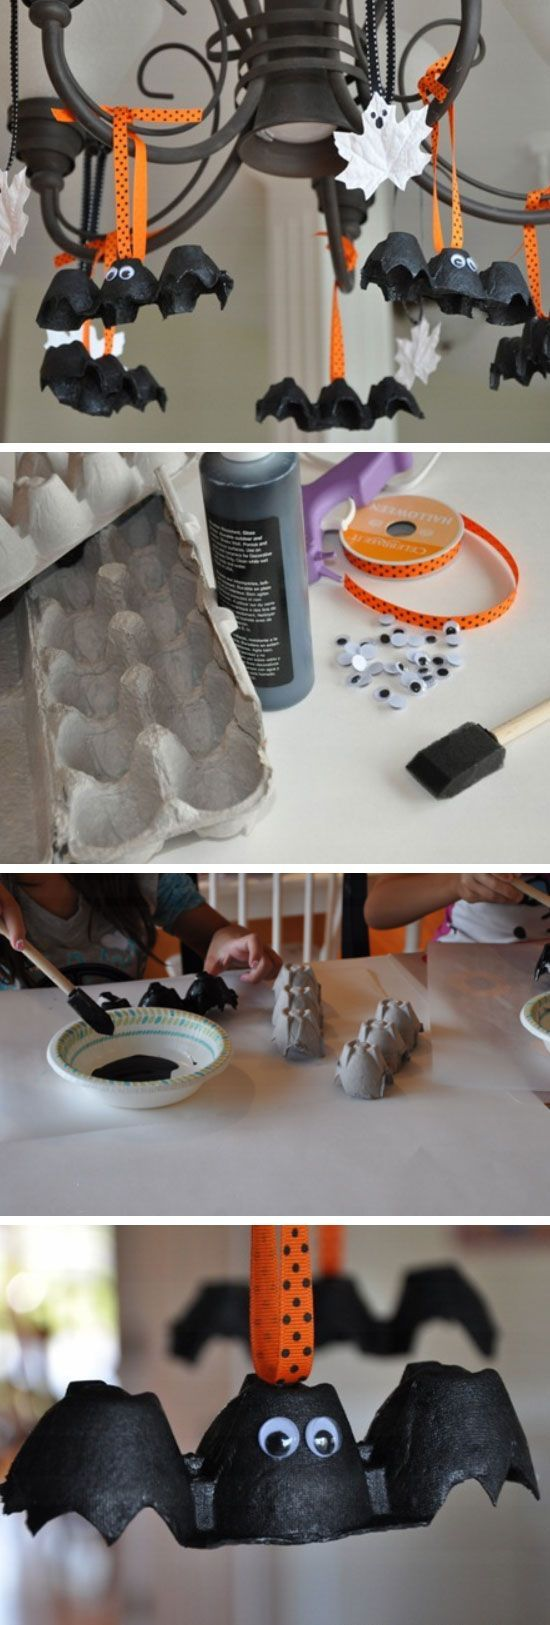 25 diy halloween decorating ideas for kids on a budget - Halloween Cartons